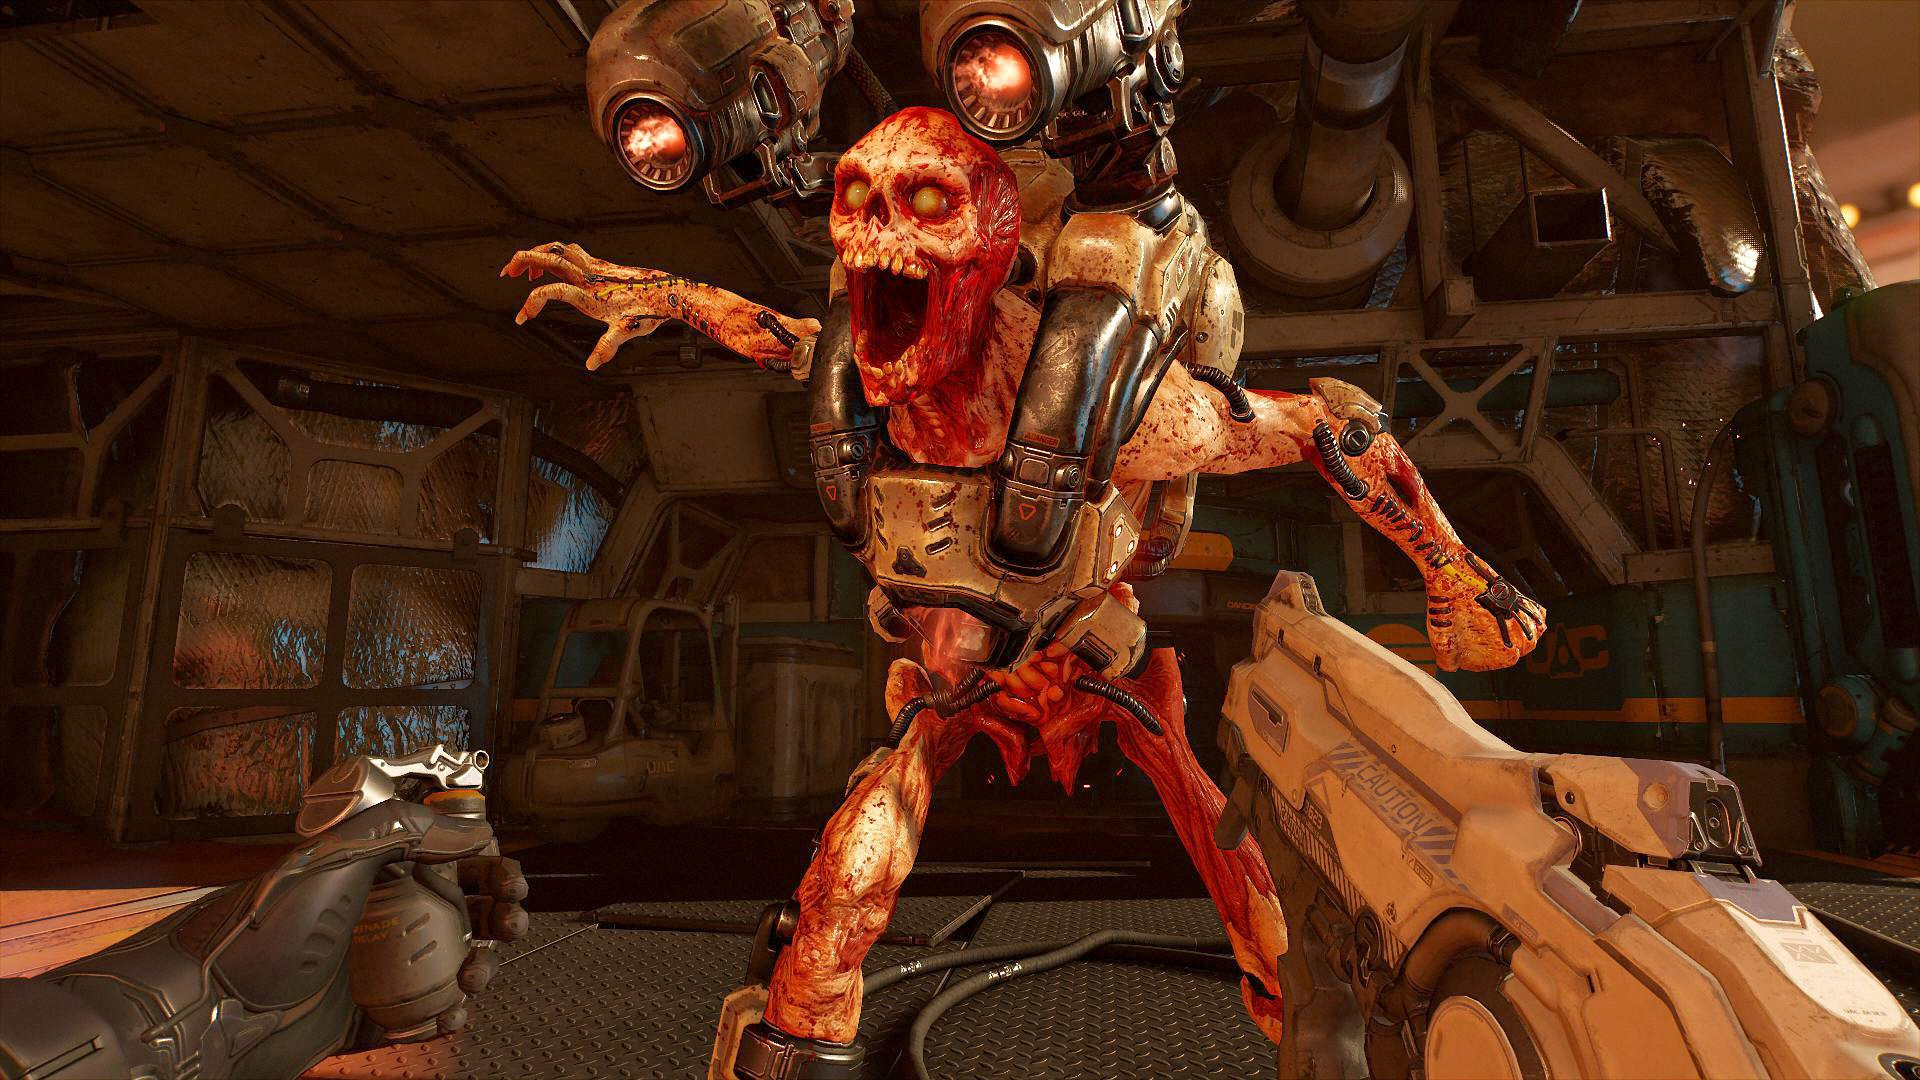 3d Home Wallpaper For Pc Doom Vfr Ps4 Playstation 4 Game Profile News